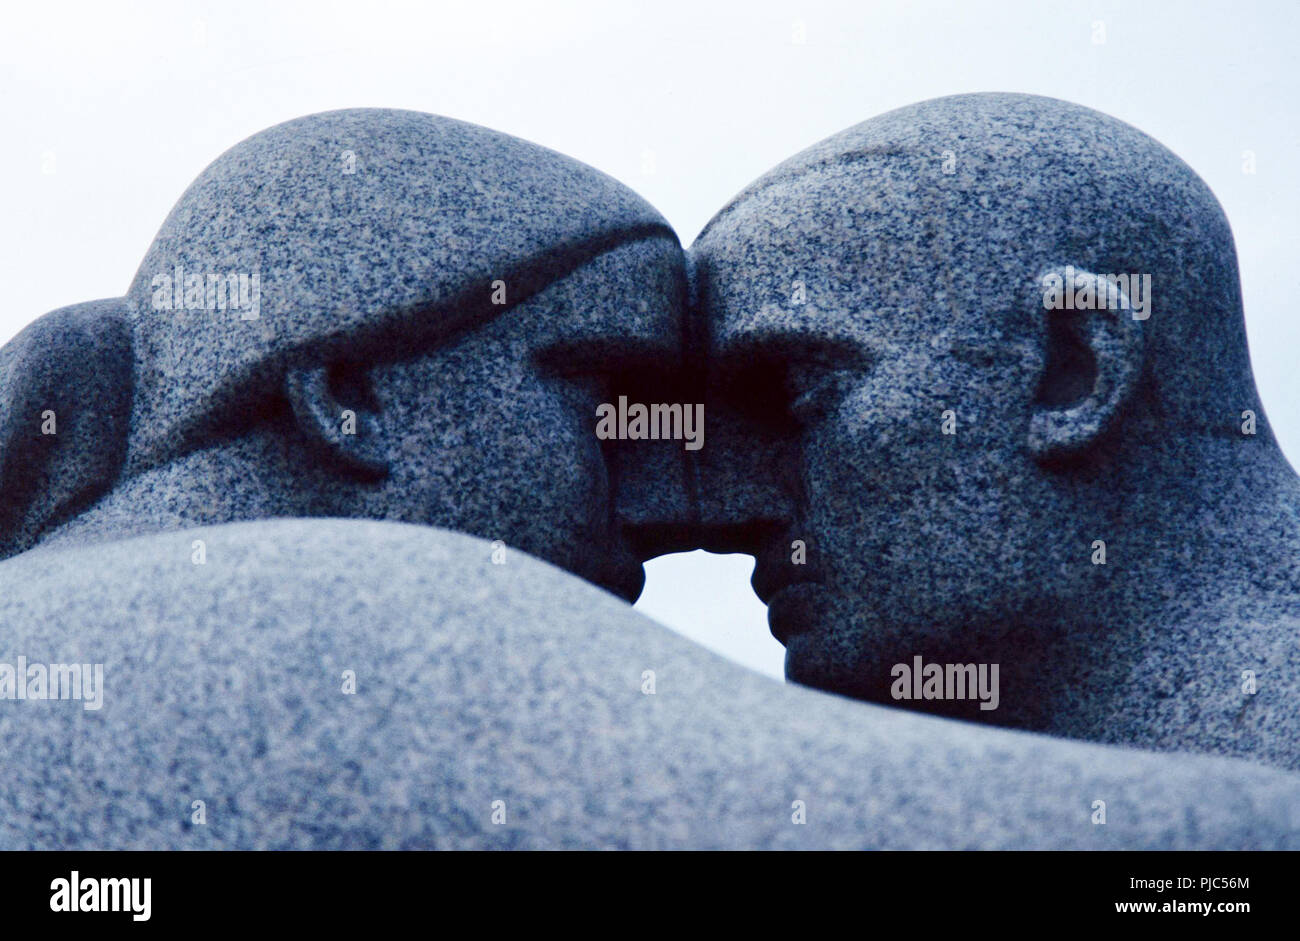 Man and woman quarreling,Vigeland Sculpture Park,Oslo,Norway - Stock Image